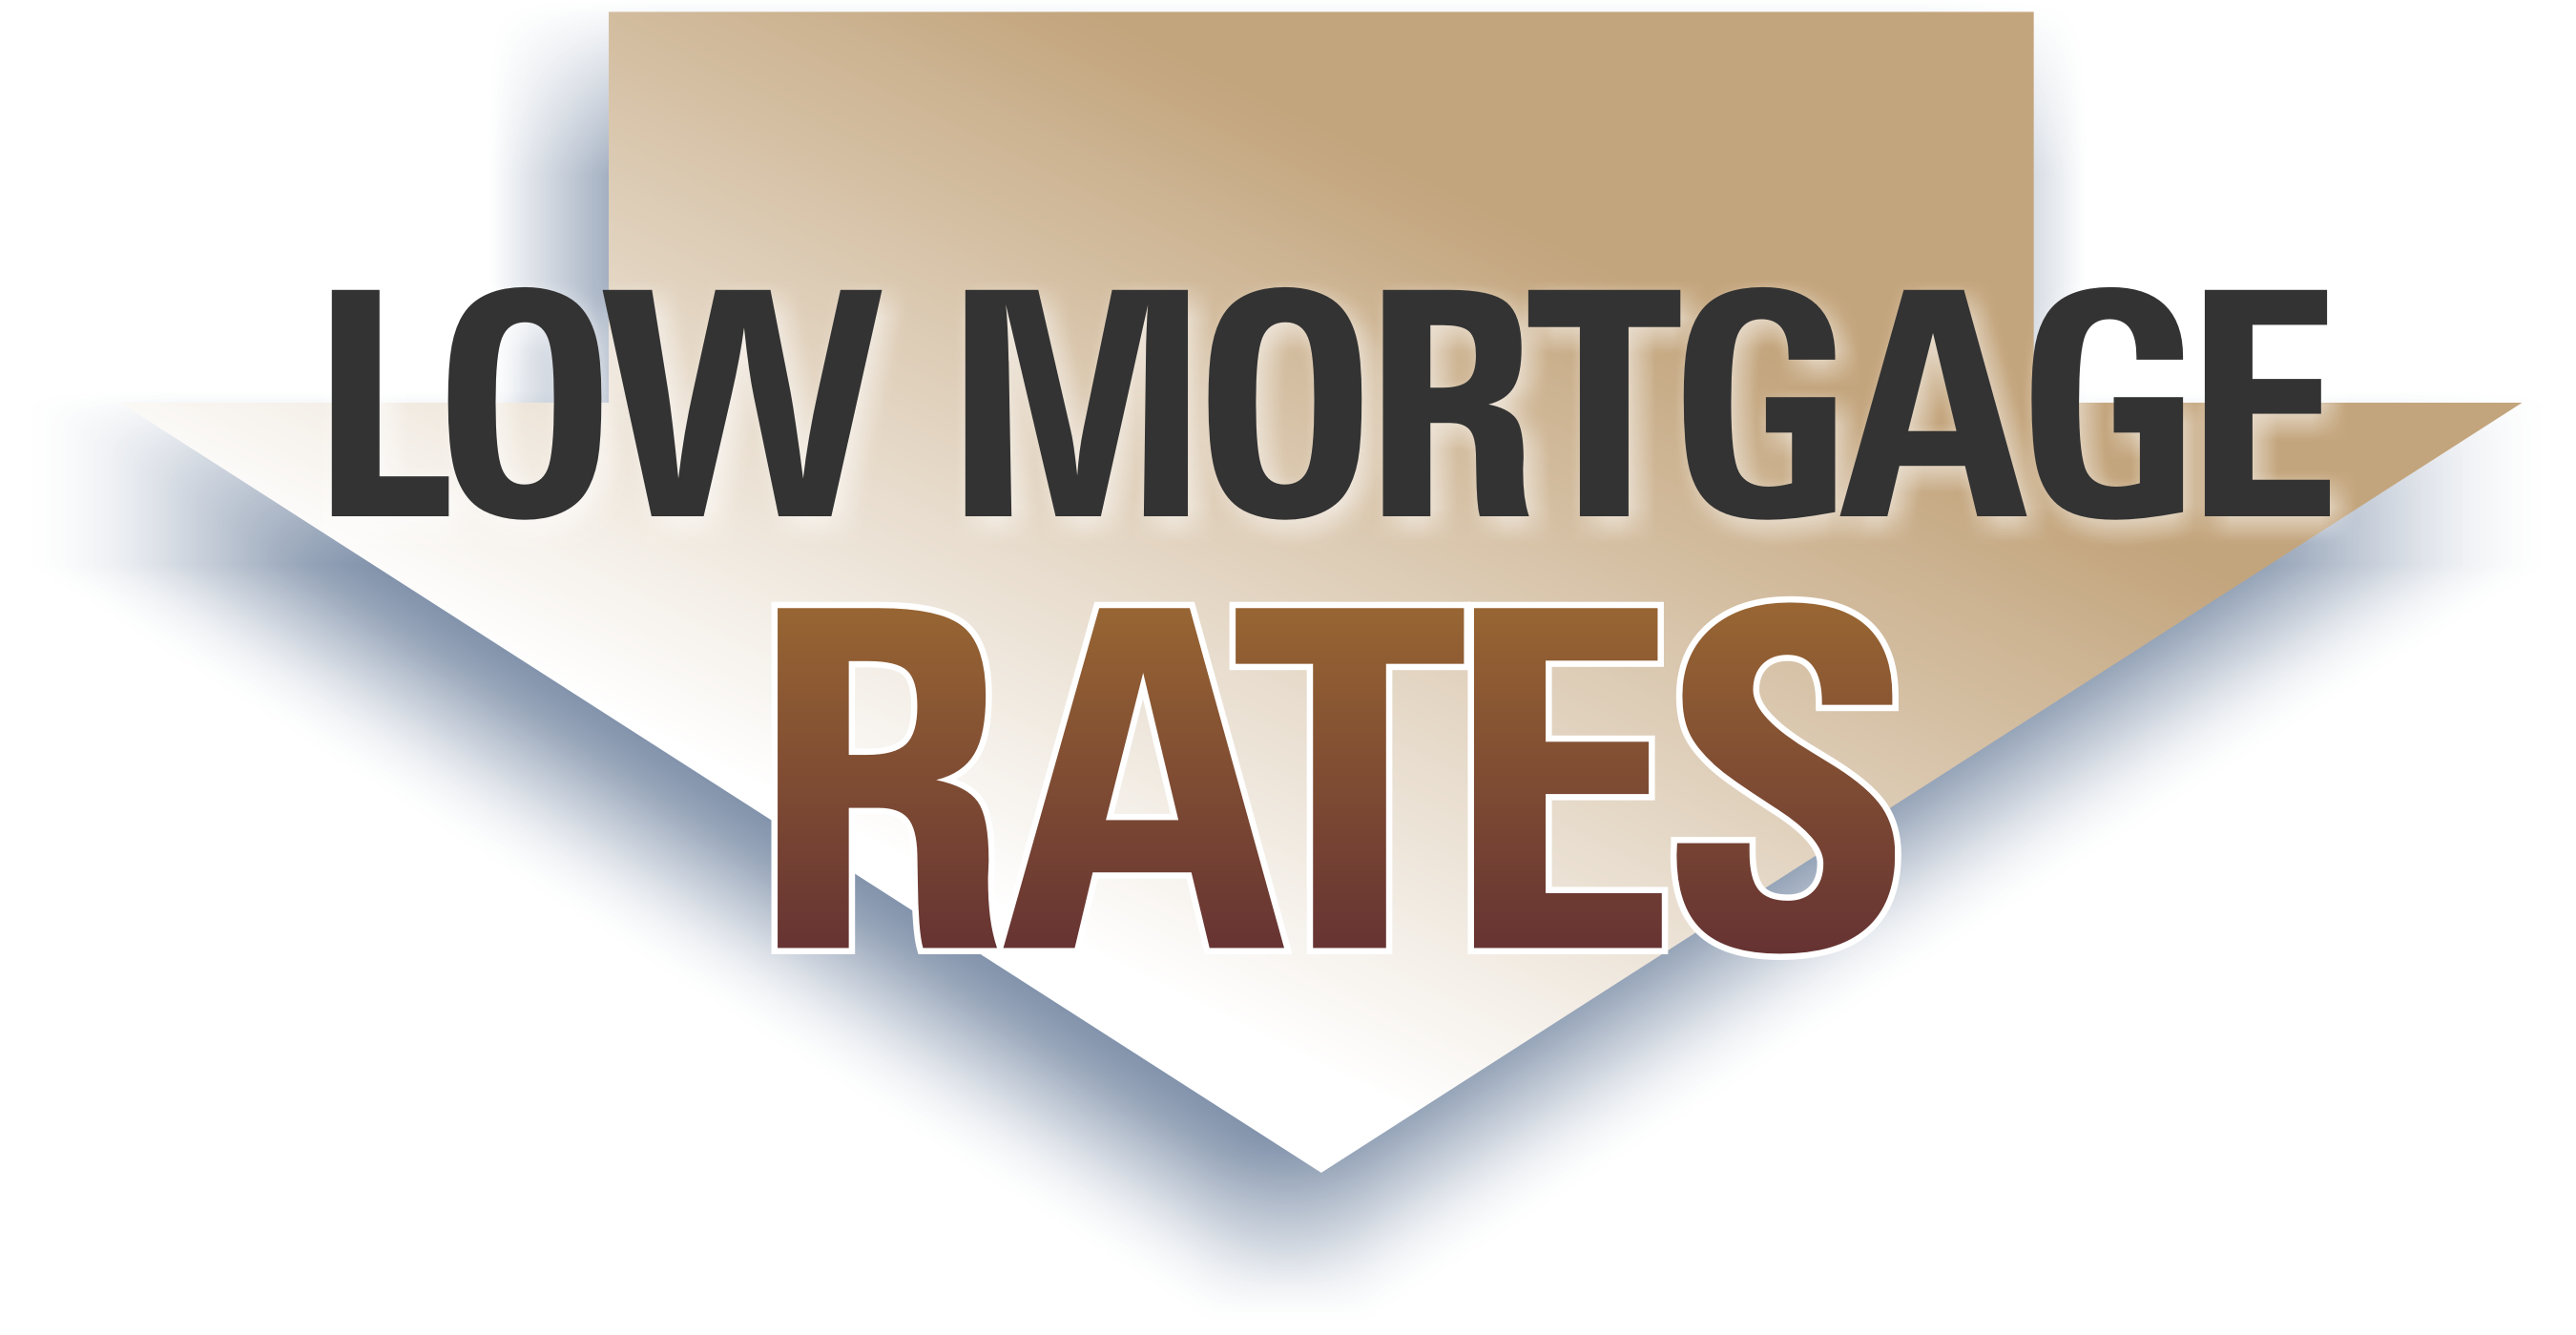 5 Smart Ways To Get A Lower Mortgage Rate!